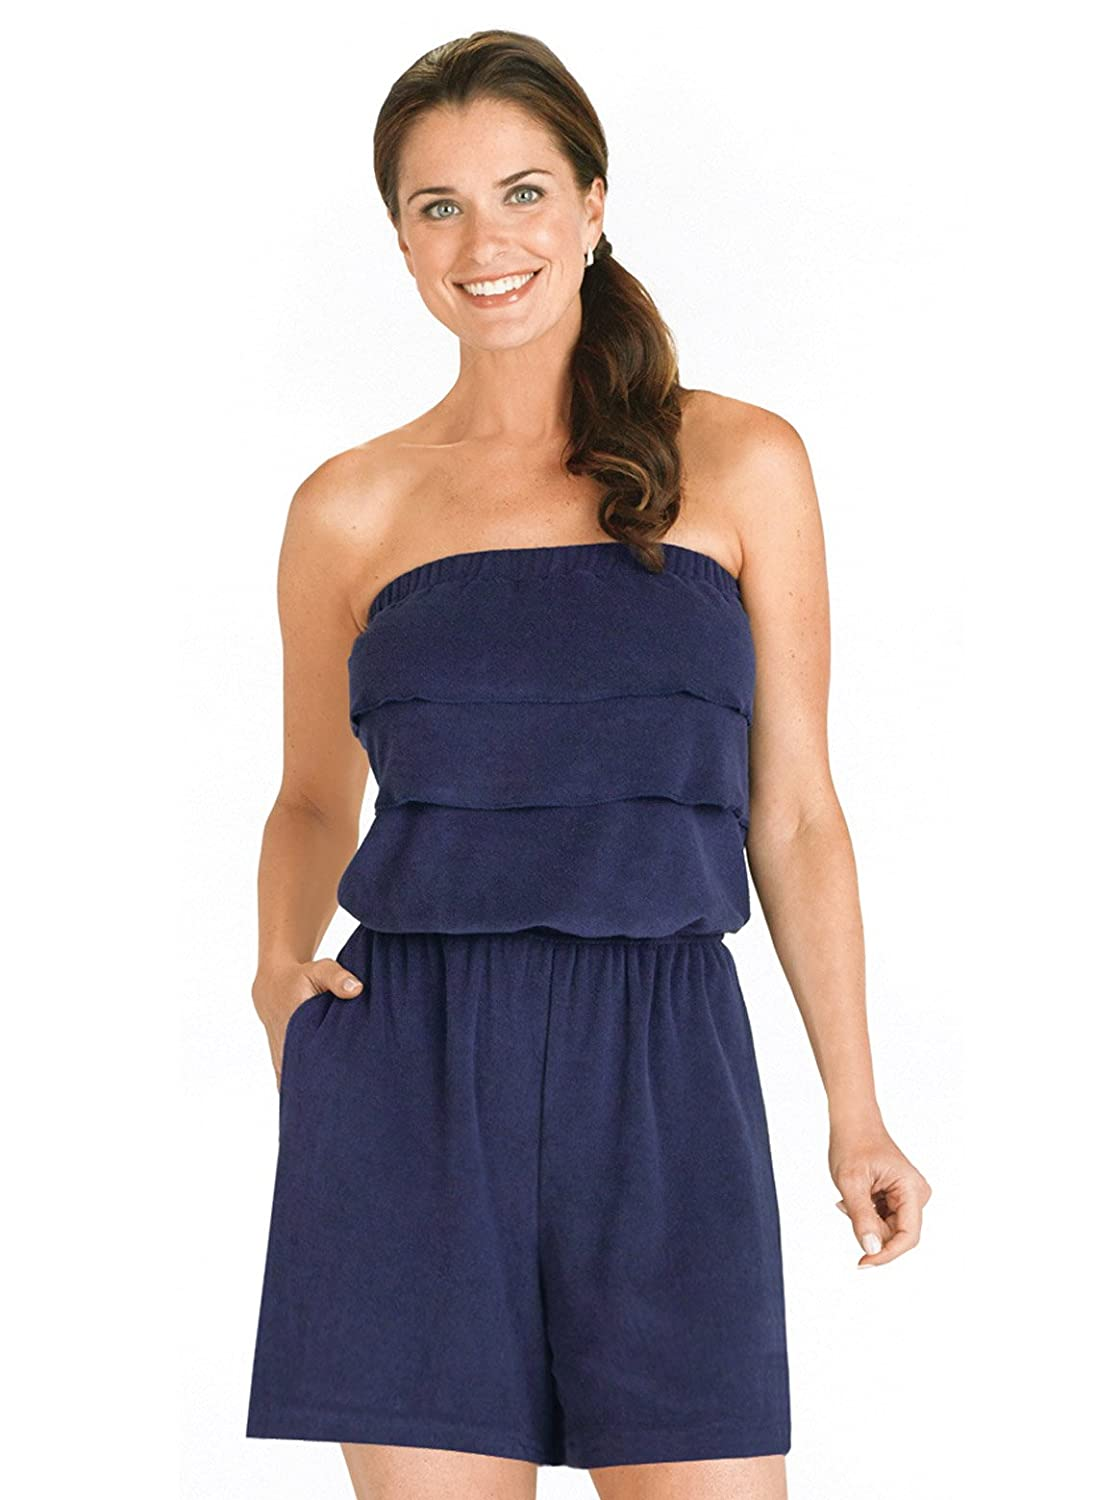 Ruffle Terry Romper - Misses Sizes